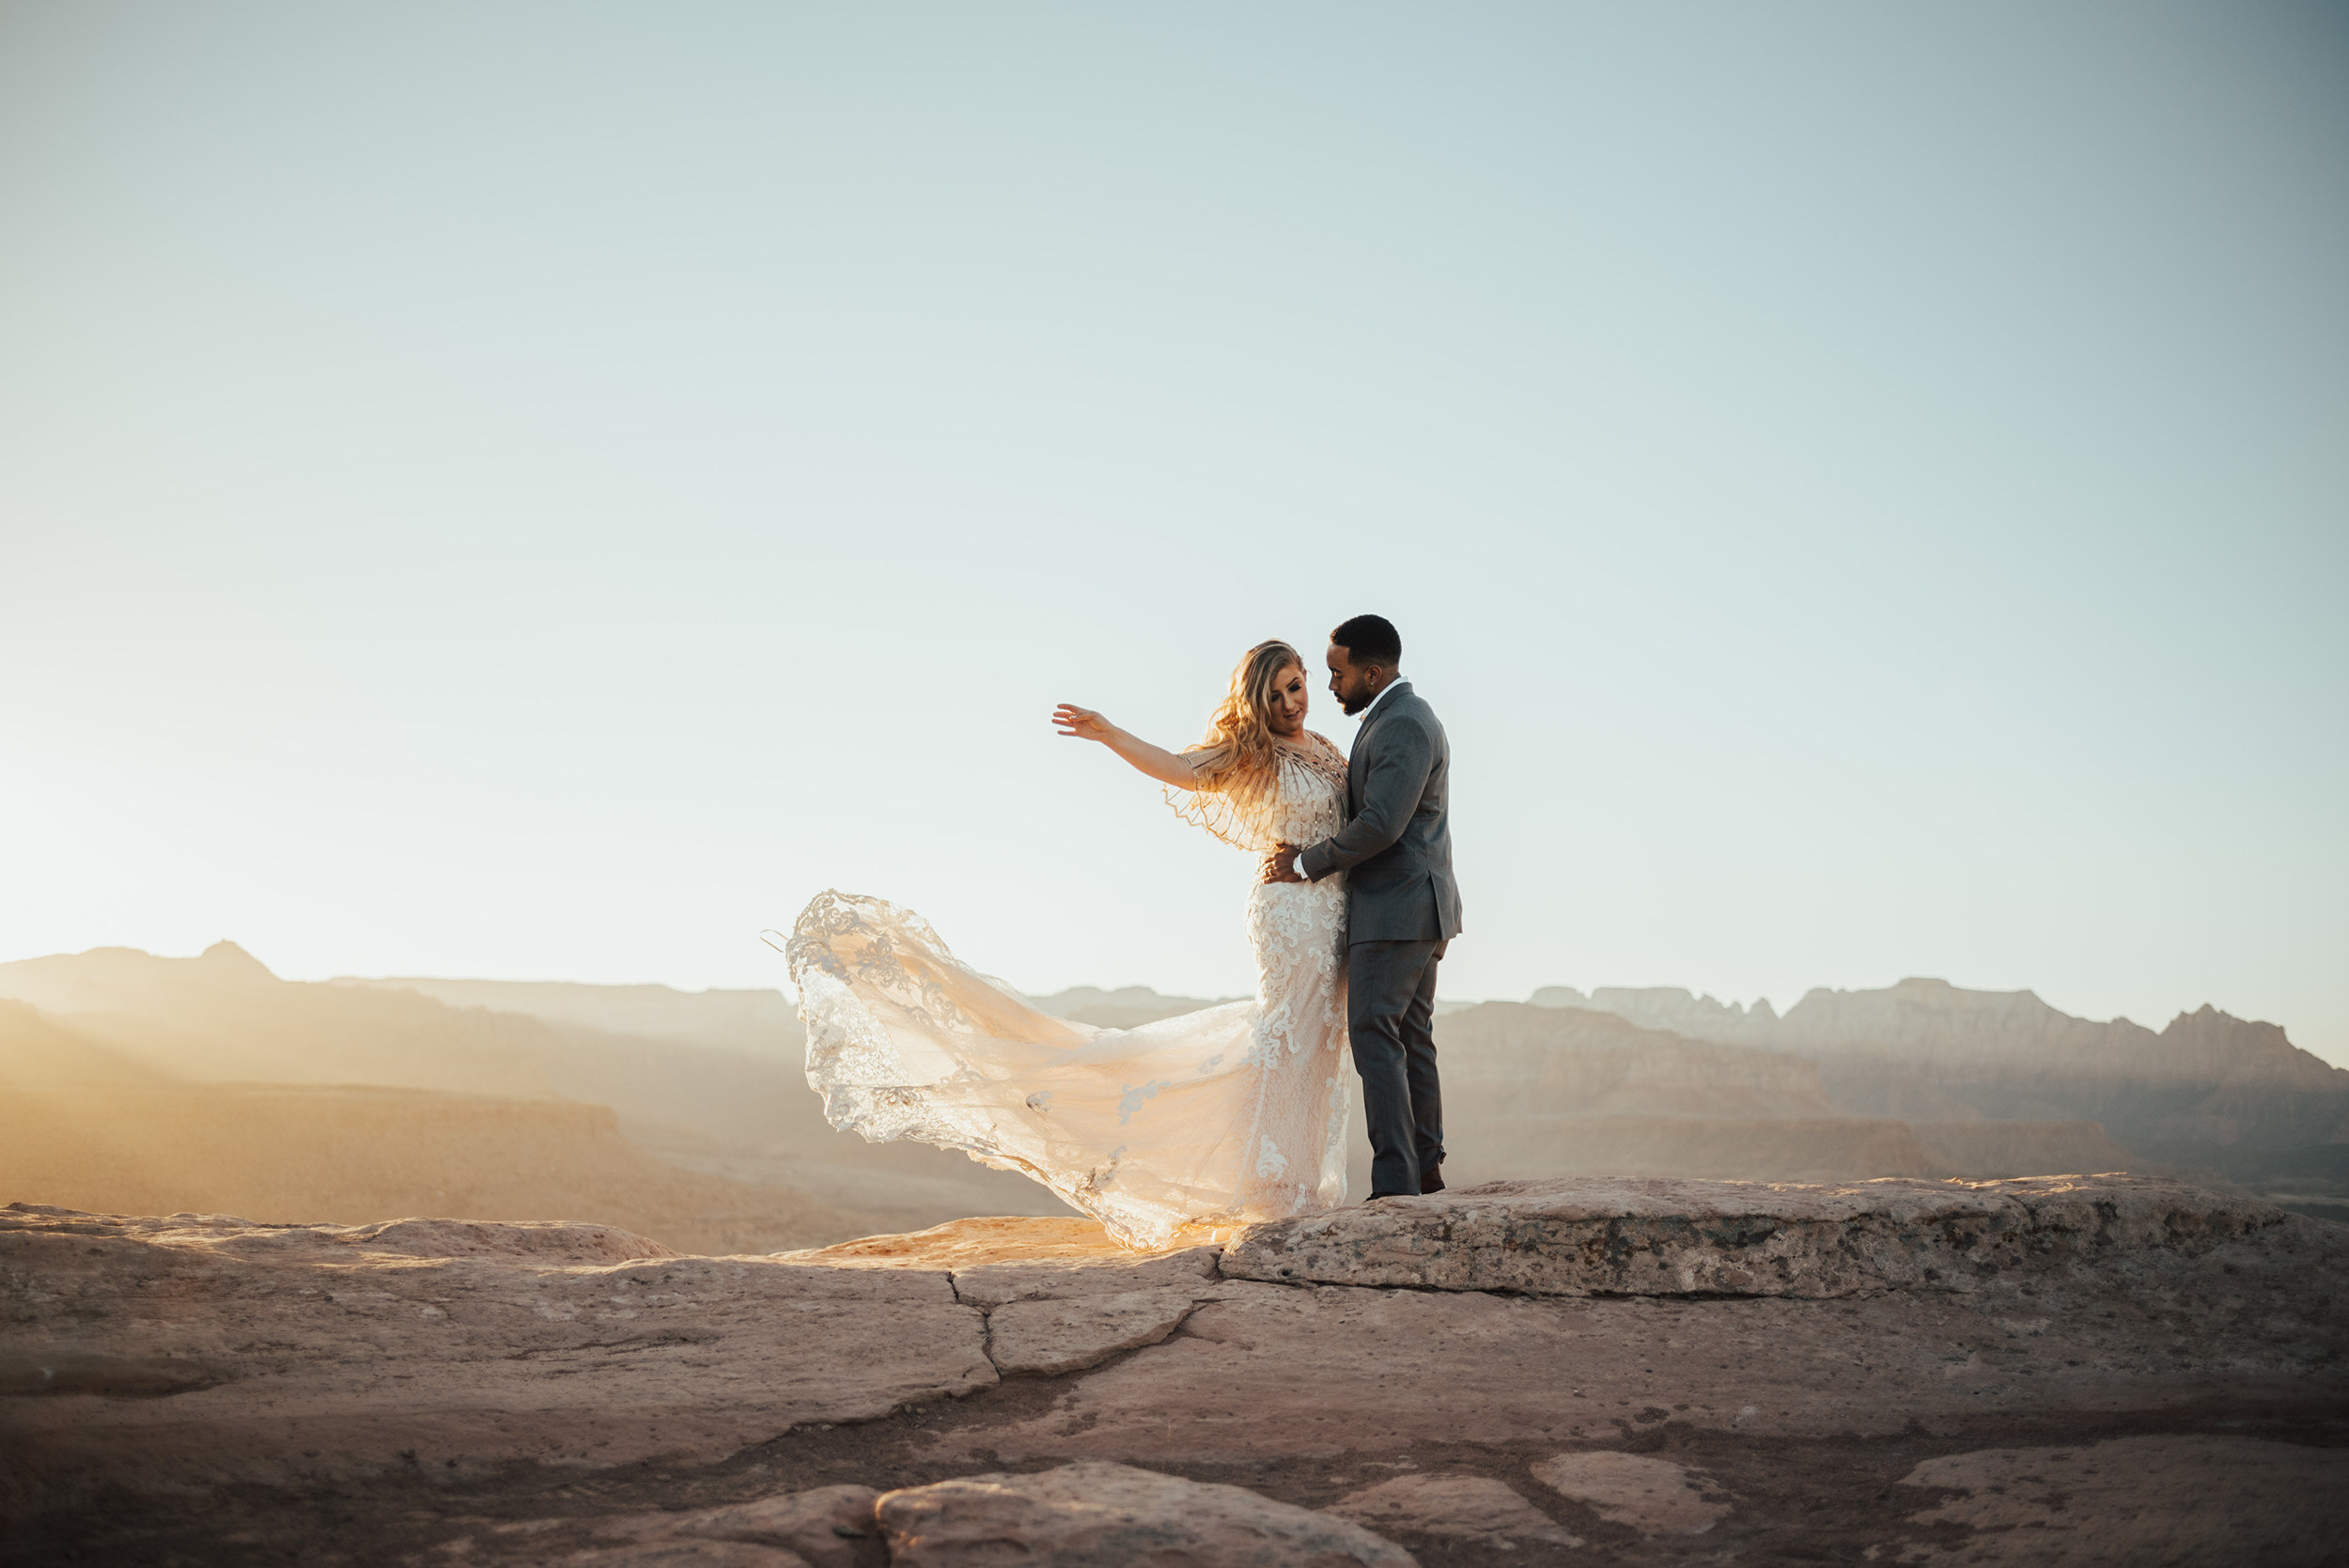 savannah-bridal-shop-ivory-and-beau-maggie-sottero-bride-tuscany-lynette-zion-national-park-wedding-utah-wedding-savannah-wedding-dresses-savannah-wedding-gowns-ashley-smith-photography-vanilla-and-the-bean-1.JPG